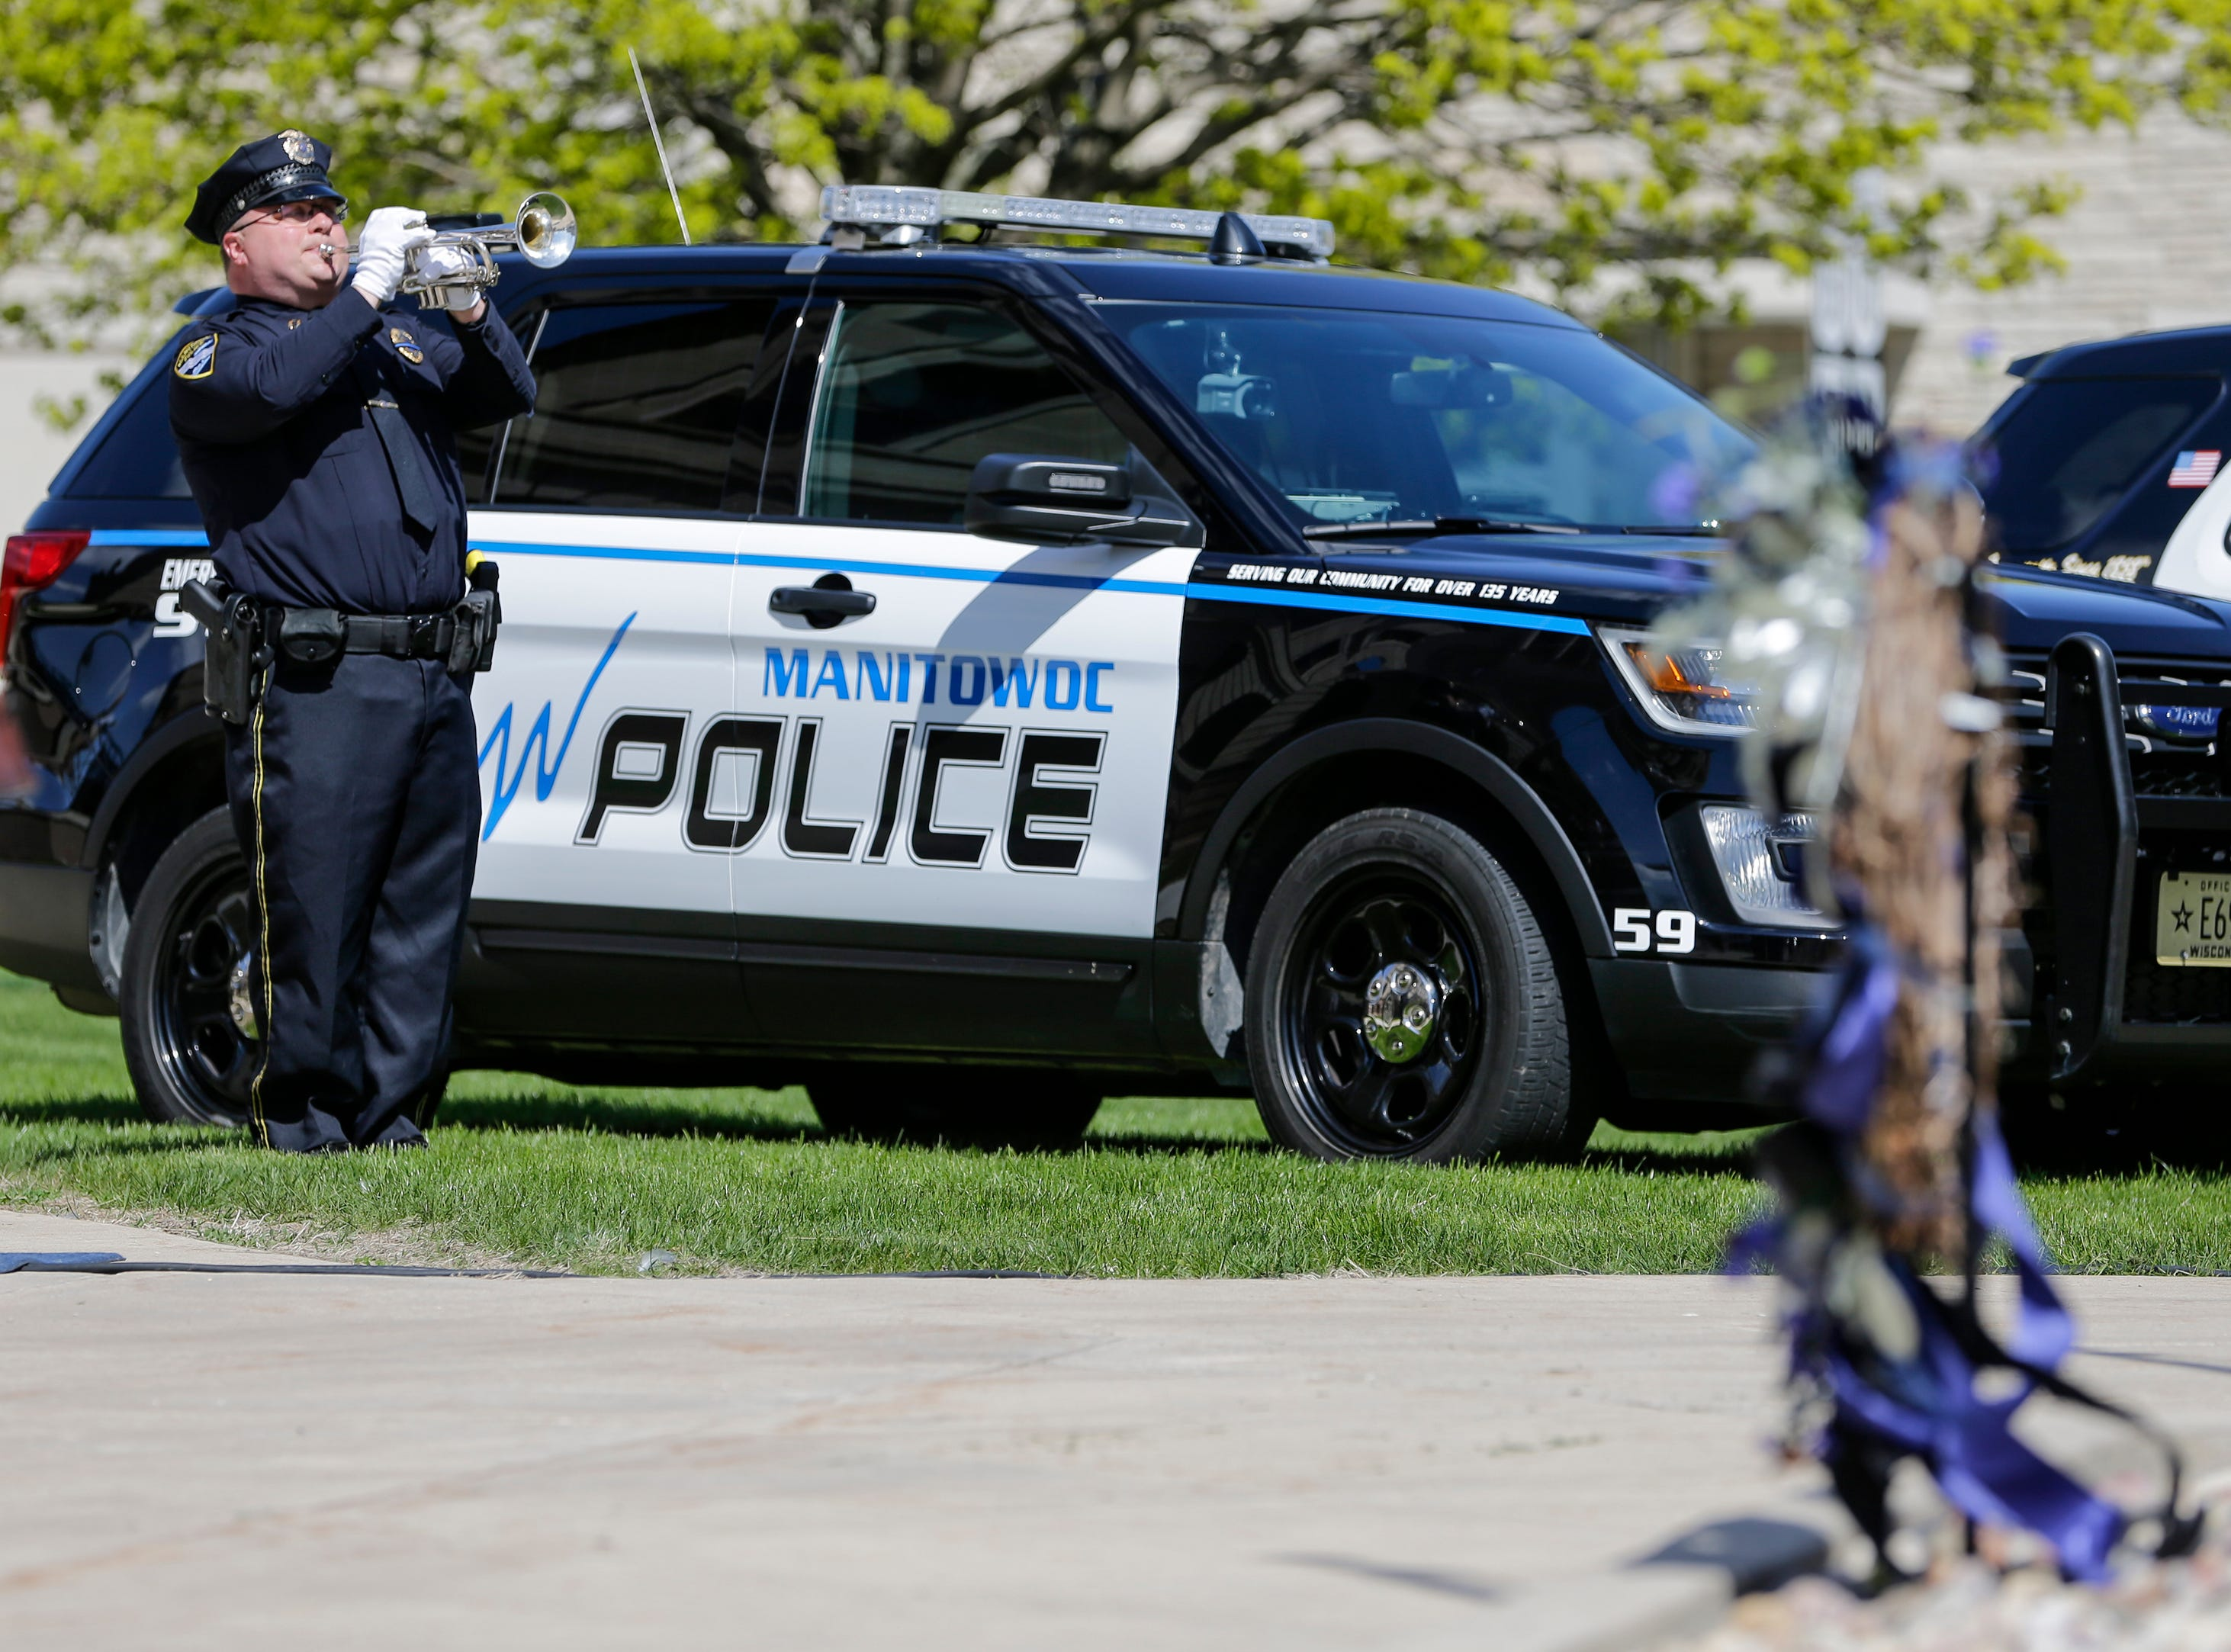 MTPD Lt. Matt Wallander plays taps in honor of the fallen heroes after the placement of the wreath during the Manitowoc County Peace Officer Memorial Service Wednesday, May 15, 2019, in Manitowoc, Wis. Joshua Clark/USA TODAY NETWORK-Wisconsin